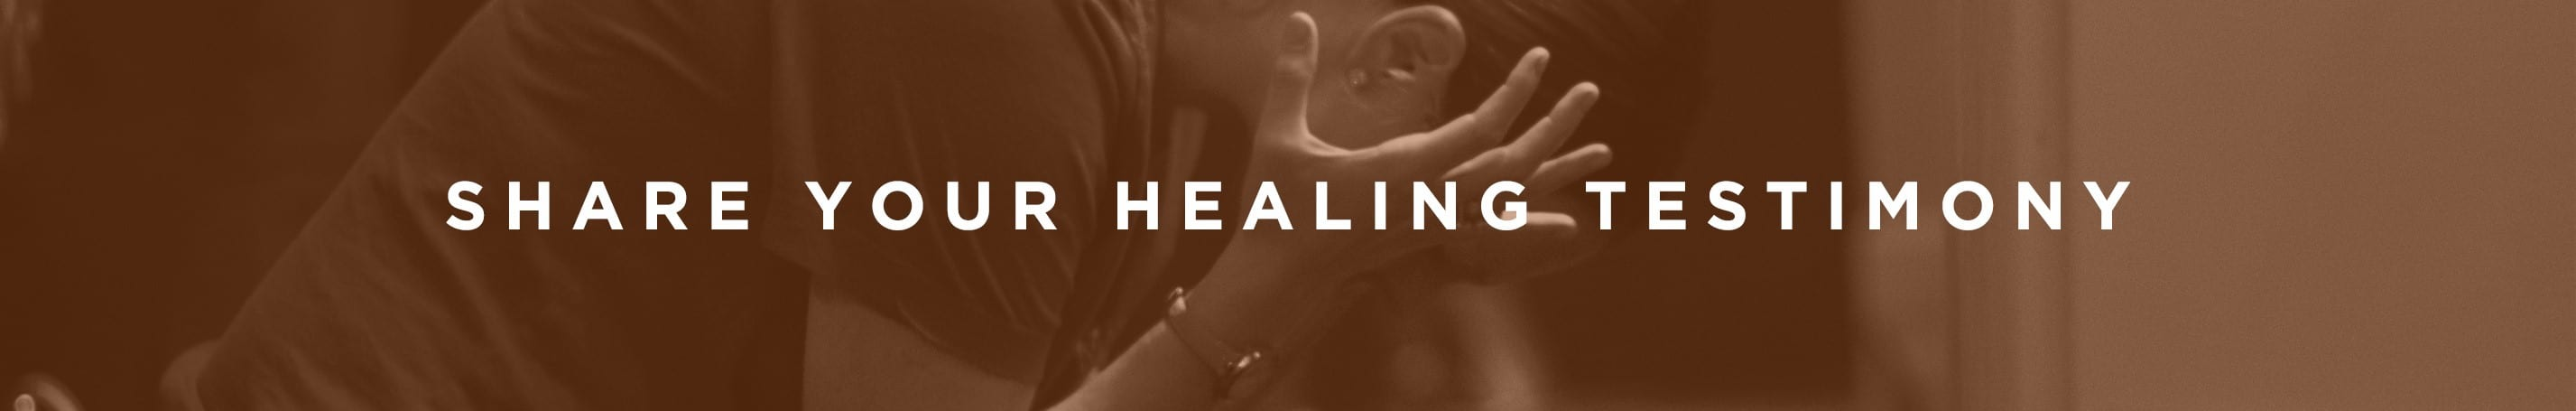 Share Your Healing Testimony